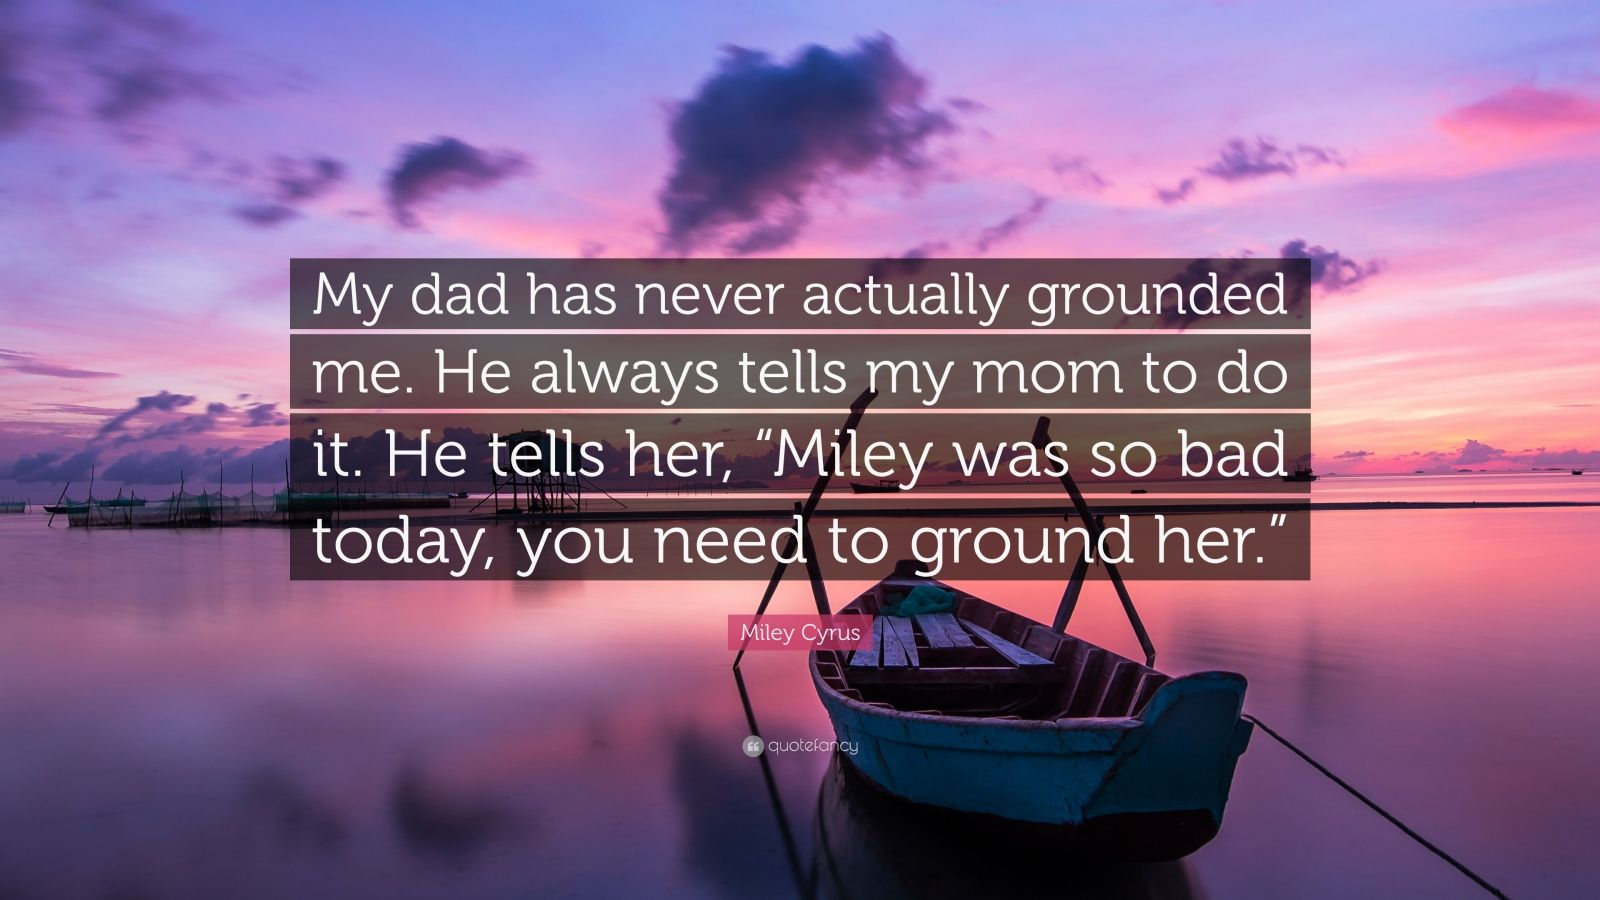 """Miley Cyrus Quote: """"My dad has never actually grounded me. He always tells my mom to do it. He tells her, """"Miley was so bad today, you need to ground her."""""""""""